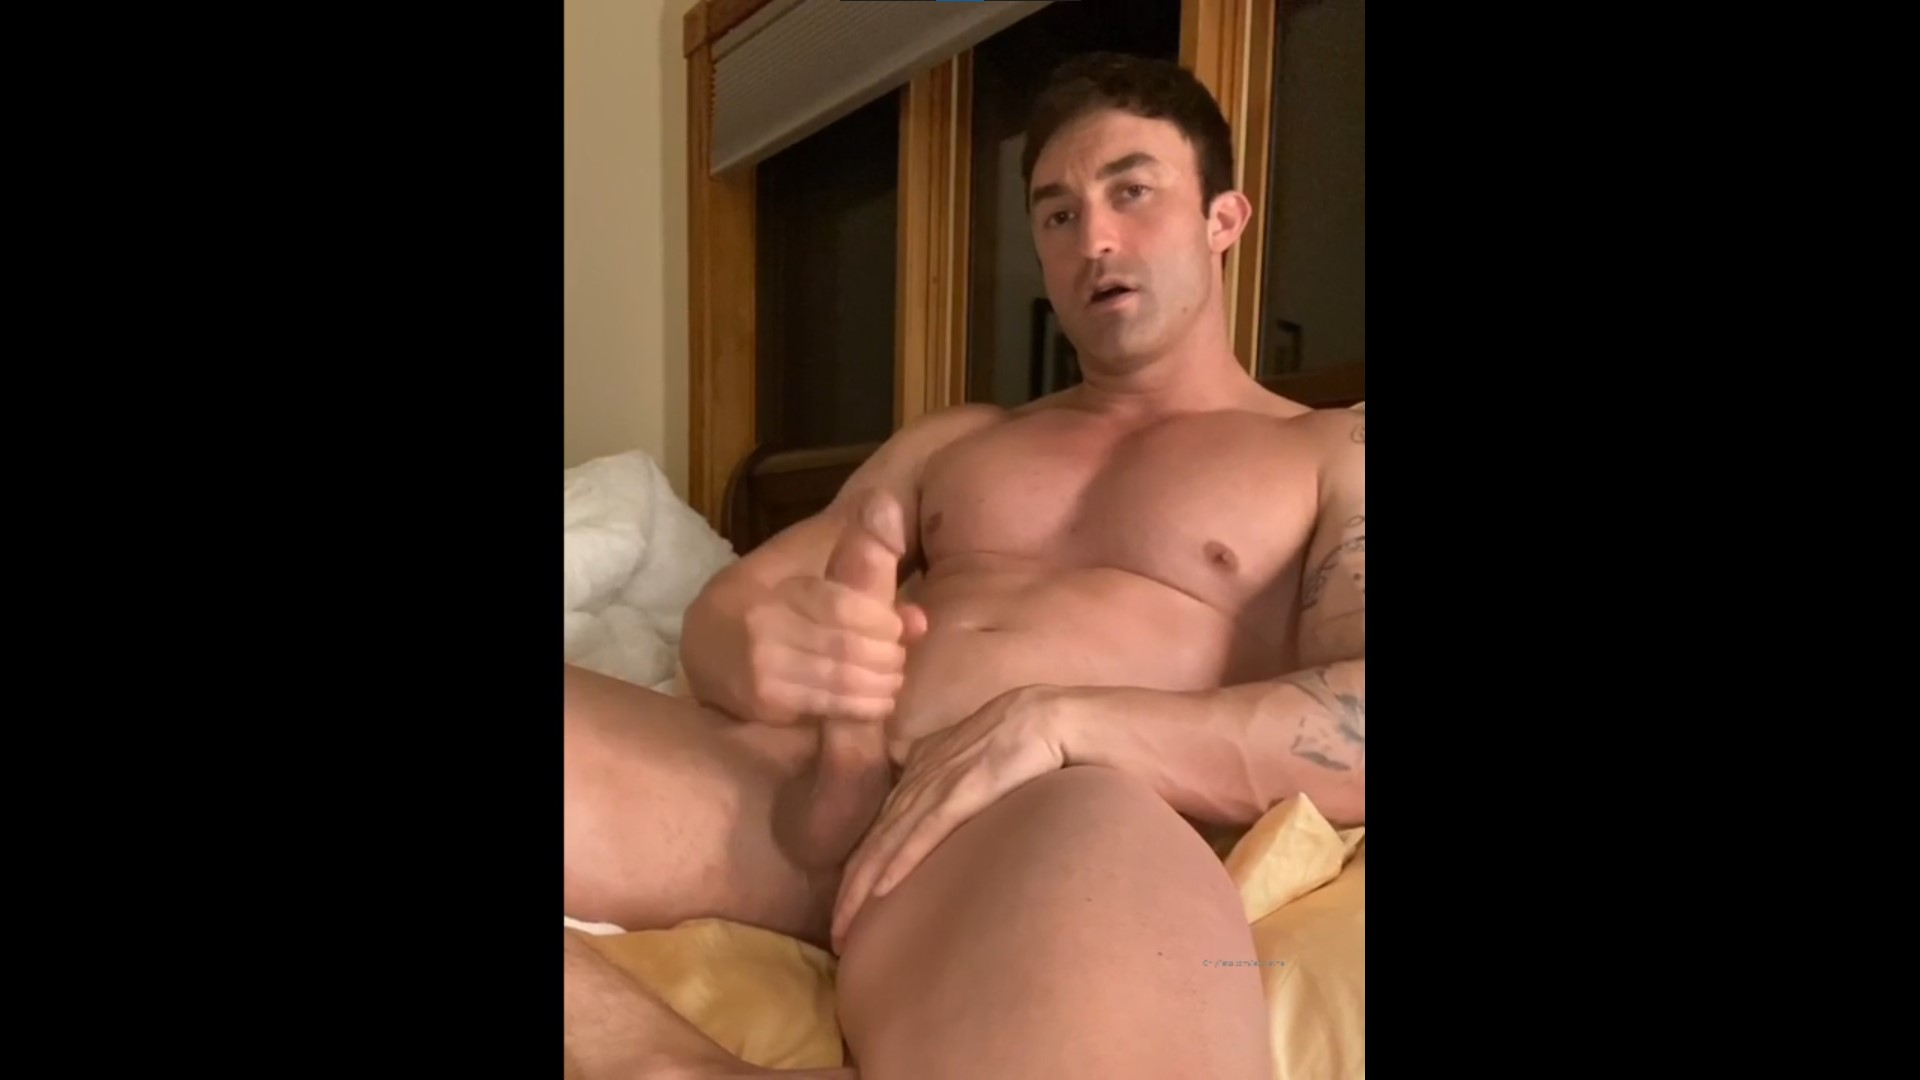 Jerking off till I cum - Jett Wayne (officialjett)